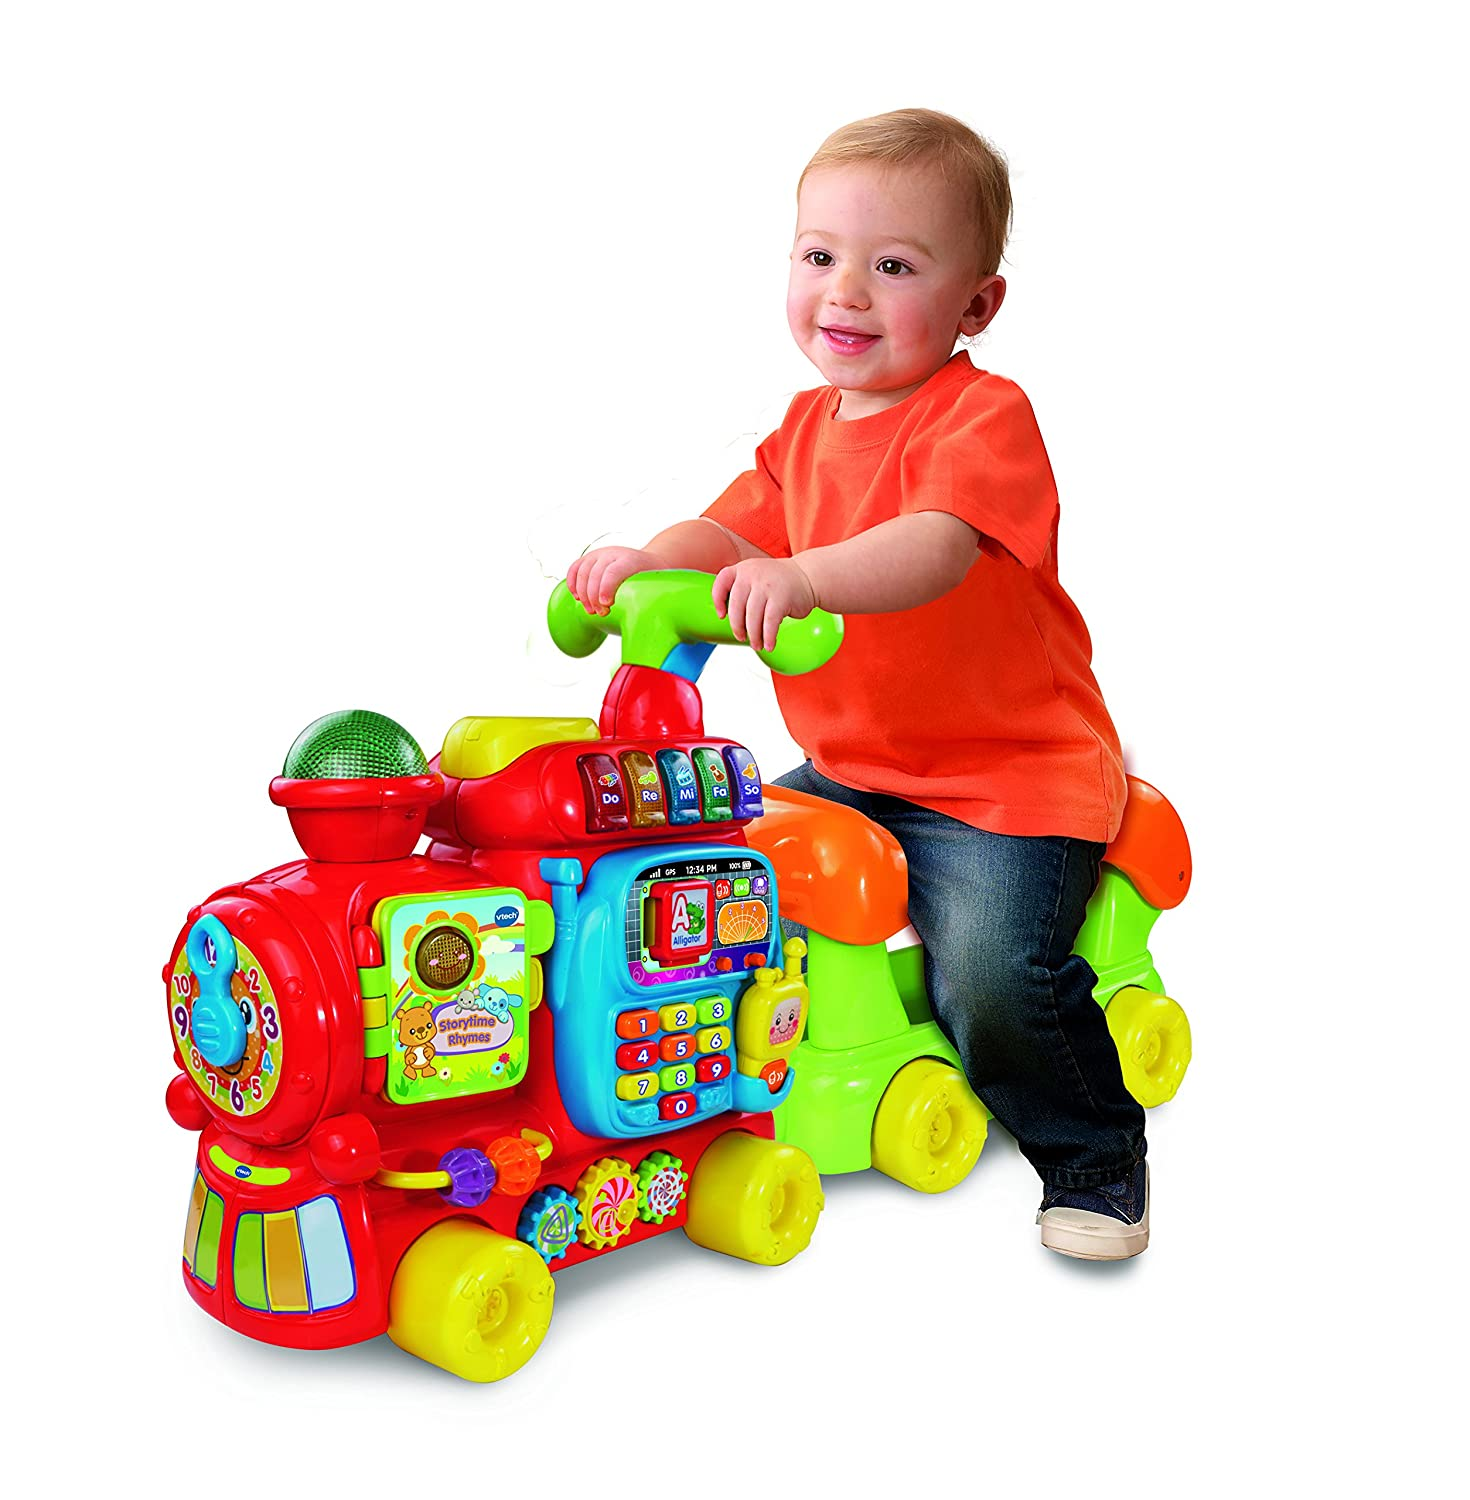 VTech Baby Push and Ride Alphabet Train Amazon Toys & Games